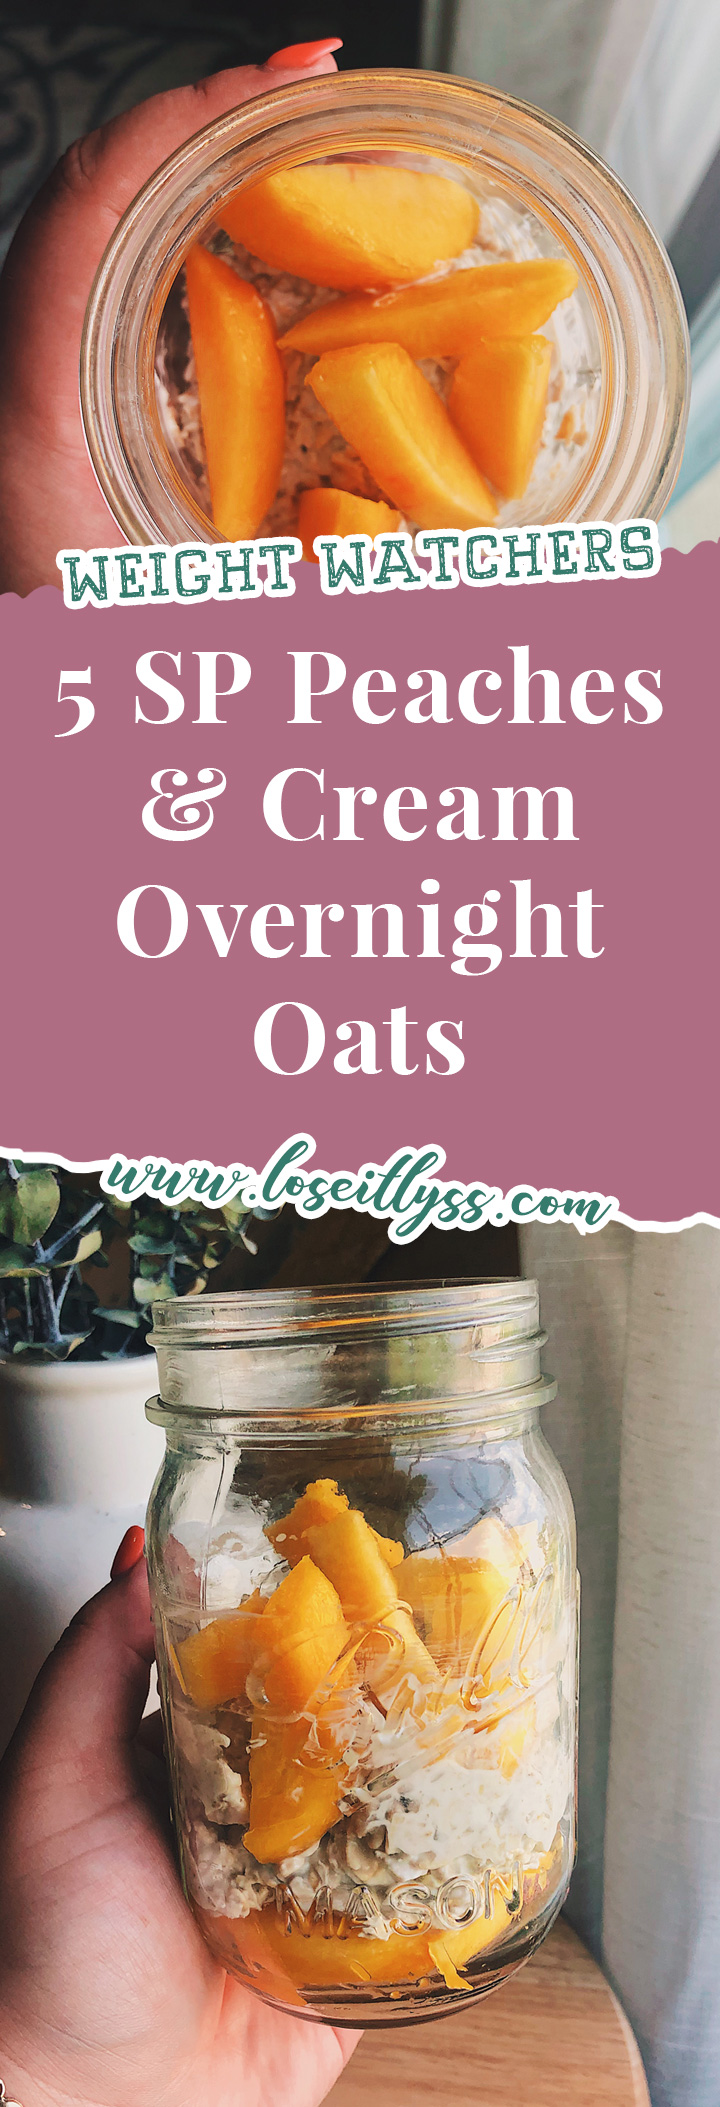 Overnight-Oats-Peaches.jpg